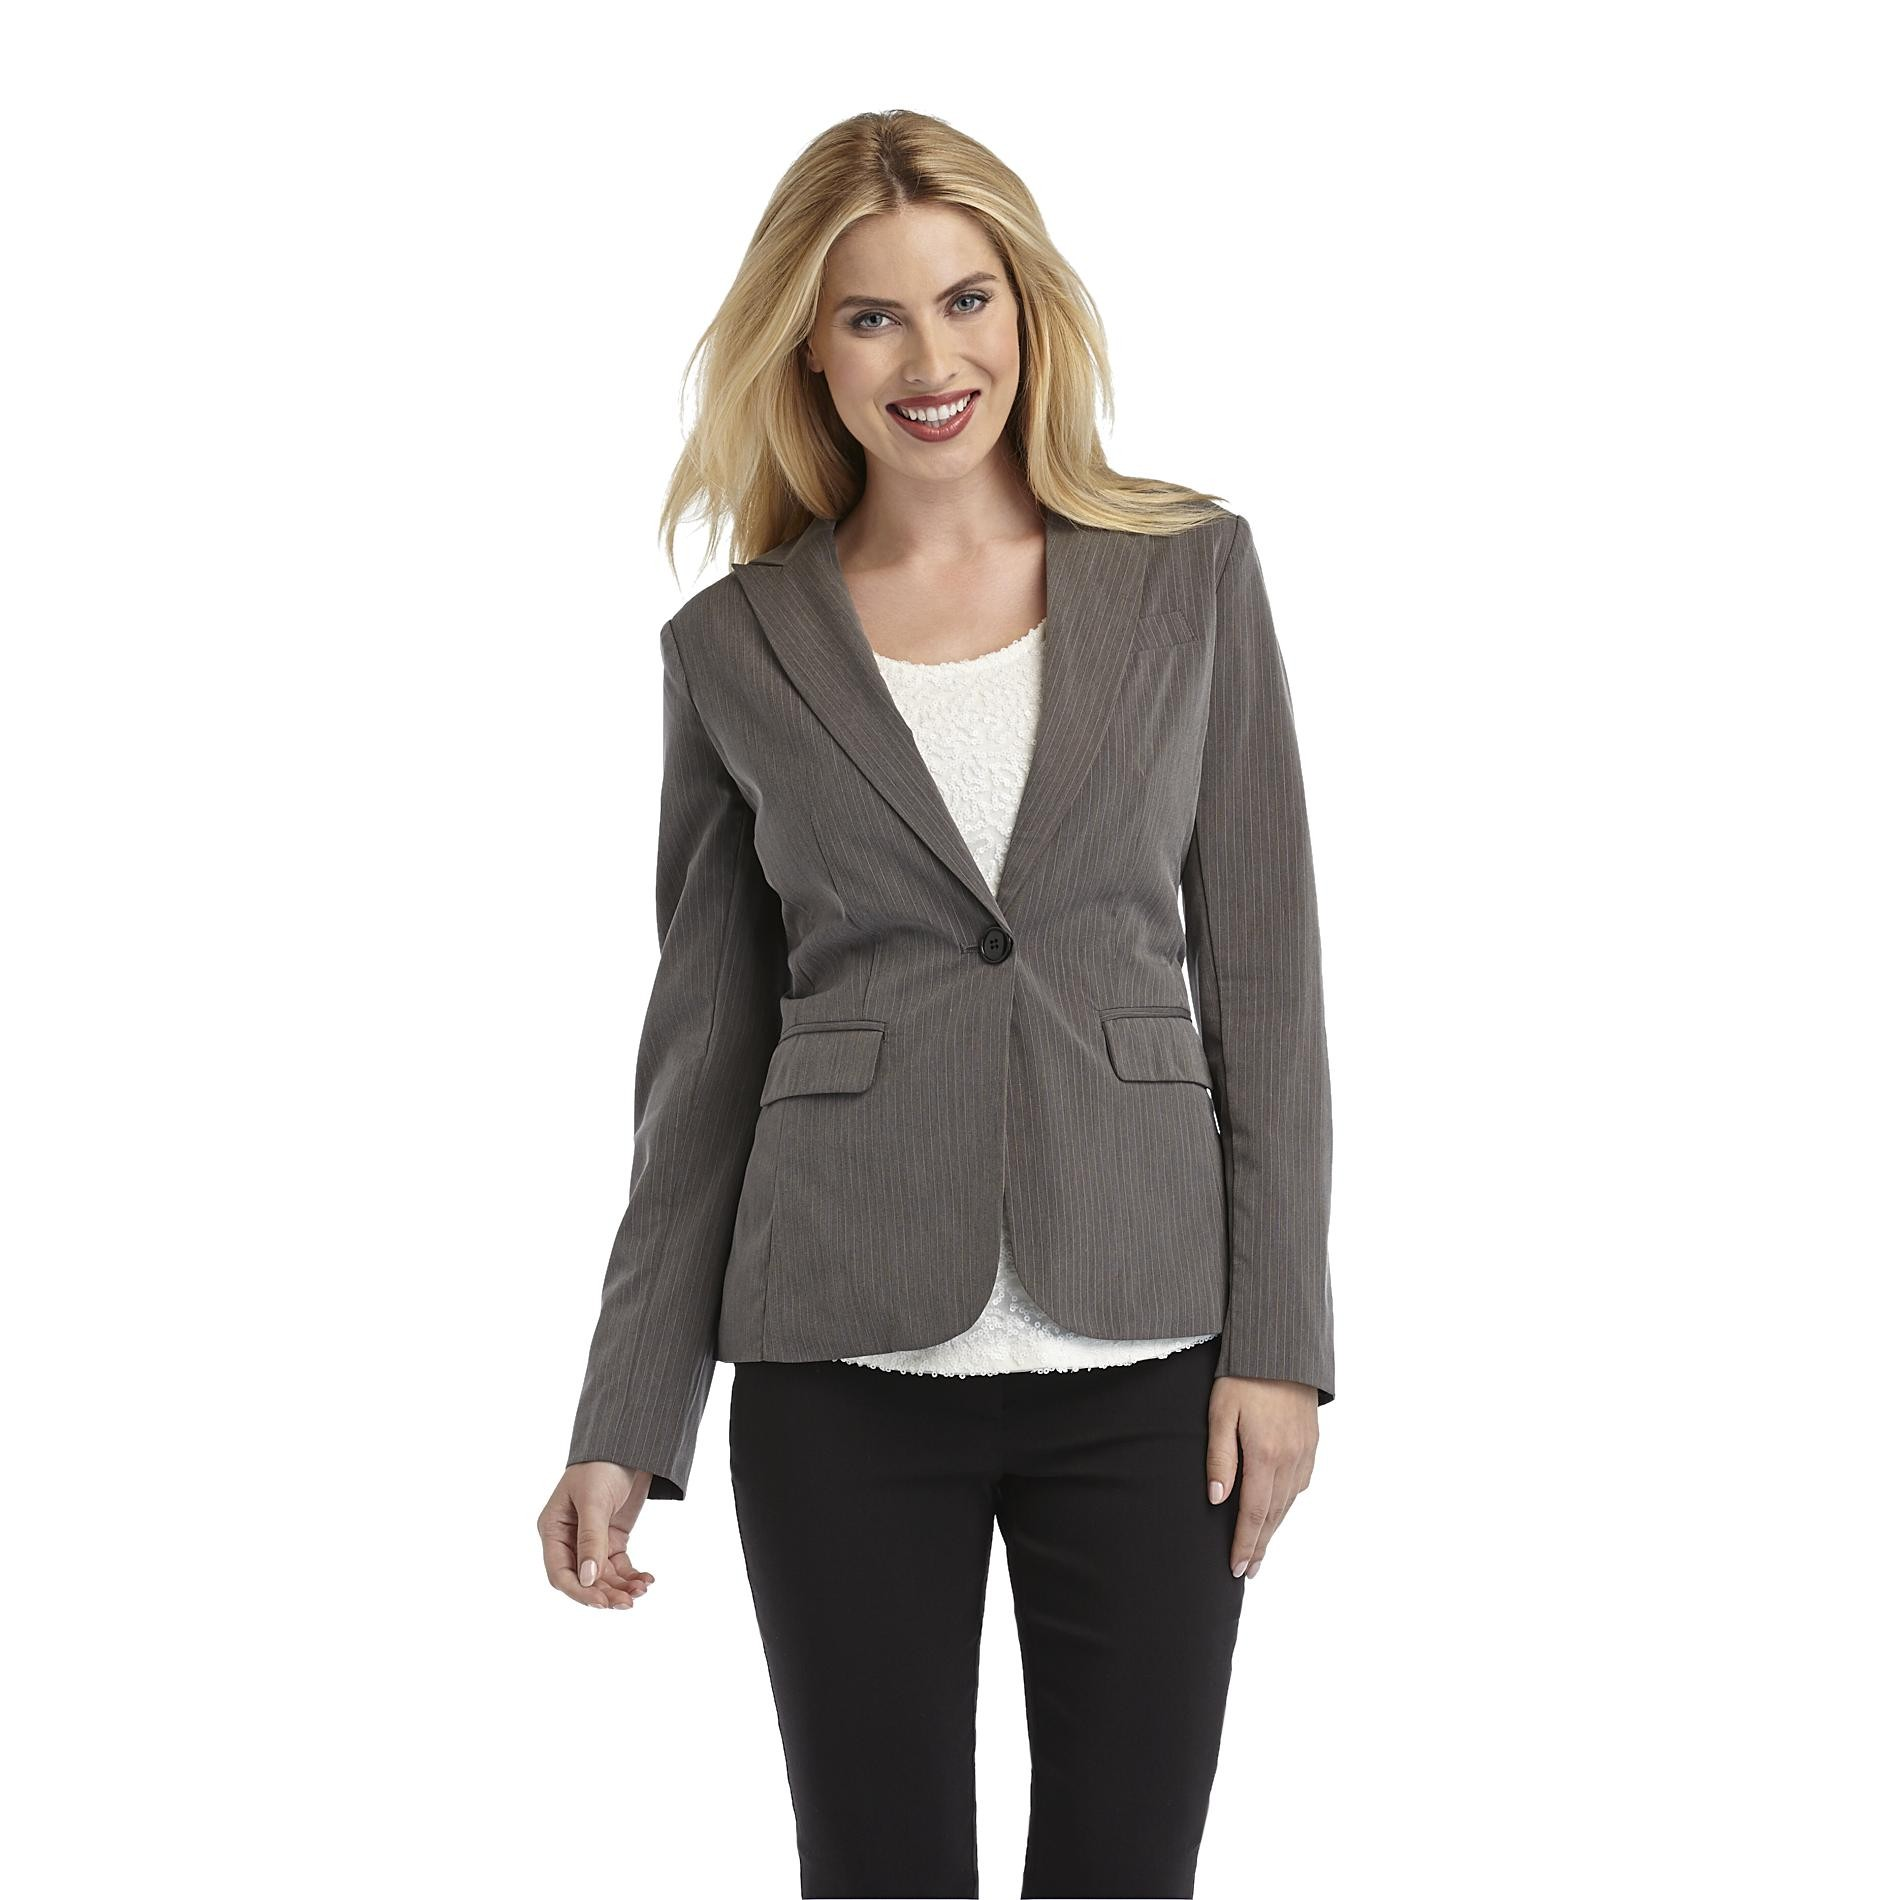 Metaphor Women's Suiting Blazer - Pinstripe at Sears.com